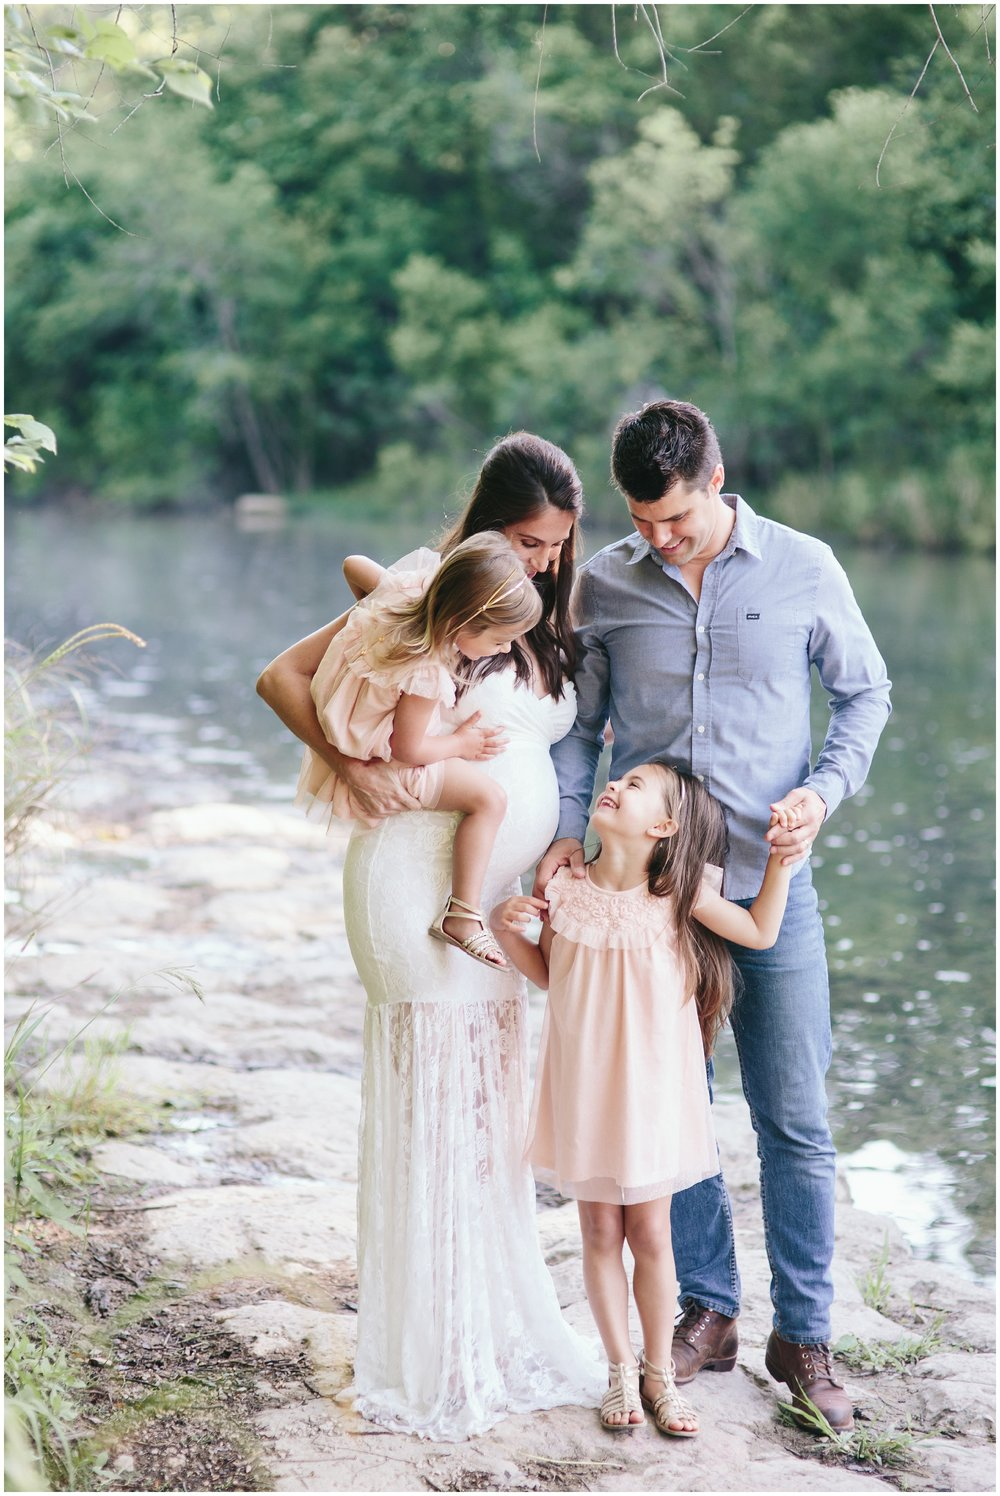 Austin Family Photographer09.jpg